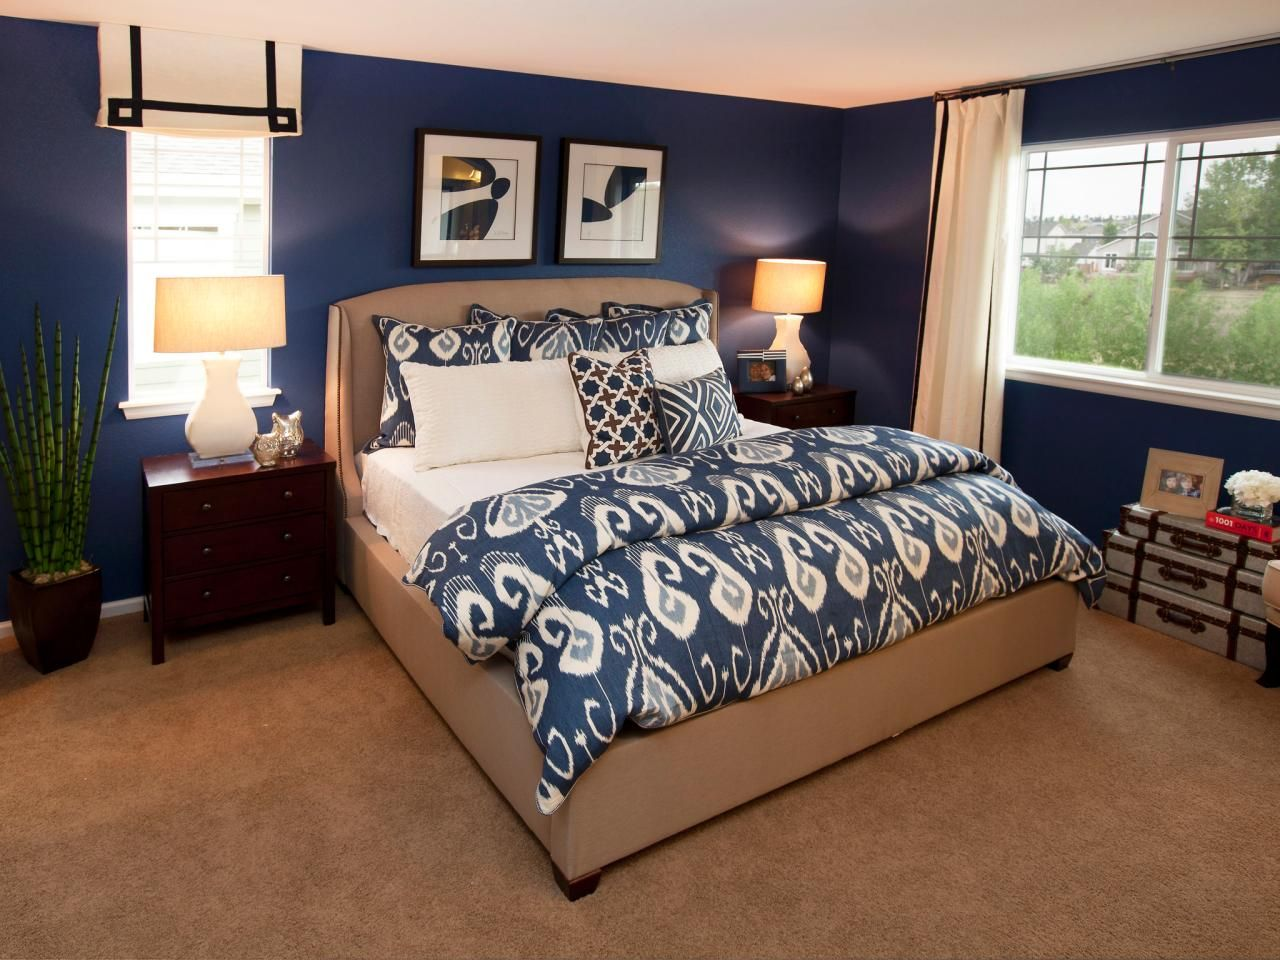 dark blue and taupe make for a pleasing and restful color